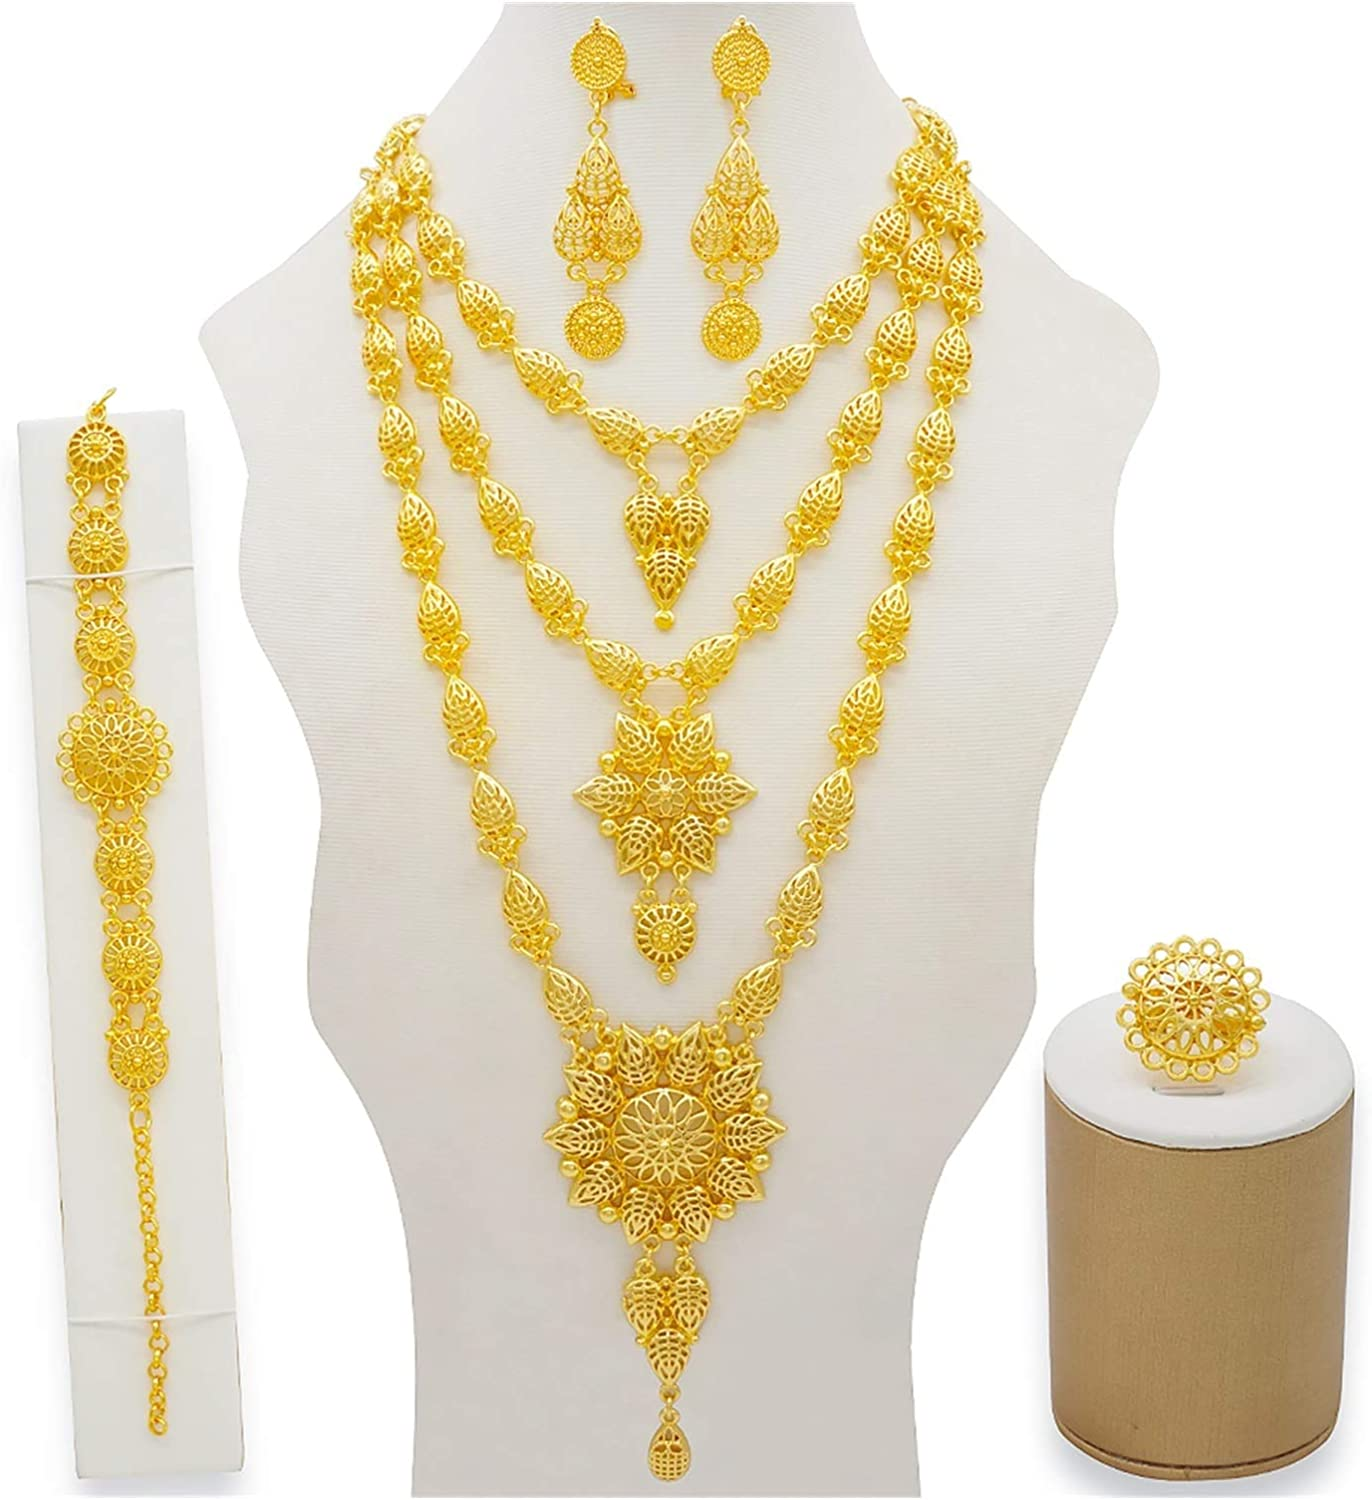 DSJTCH Dubai Jewelry Sets Gold Necklace & Earring Set for Women African France Wedding Party 24K Jewelery Ethiopia Bridal Gifts (Metal Color : BJ832)